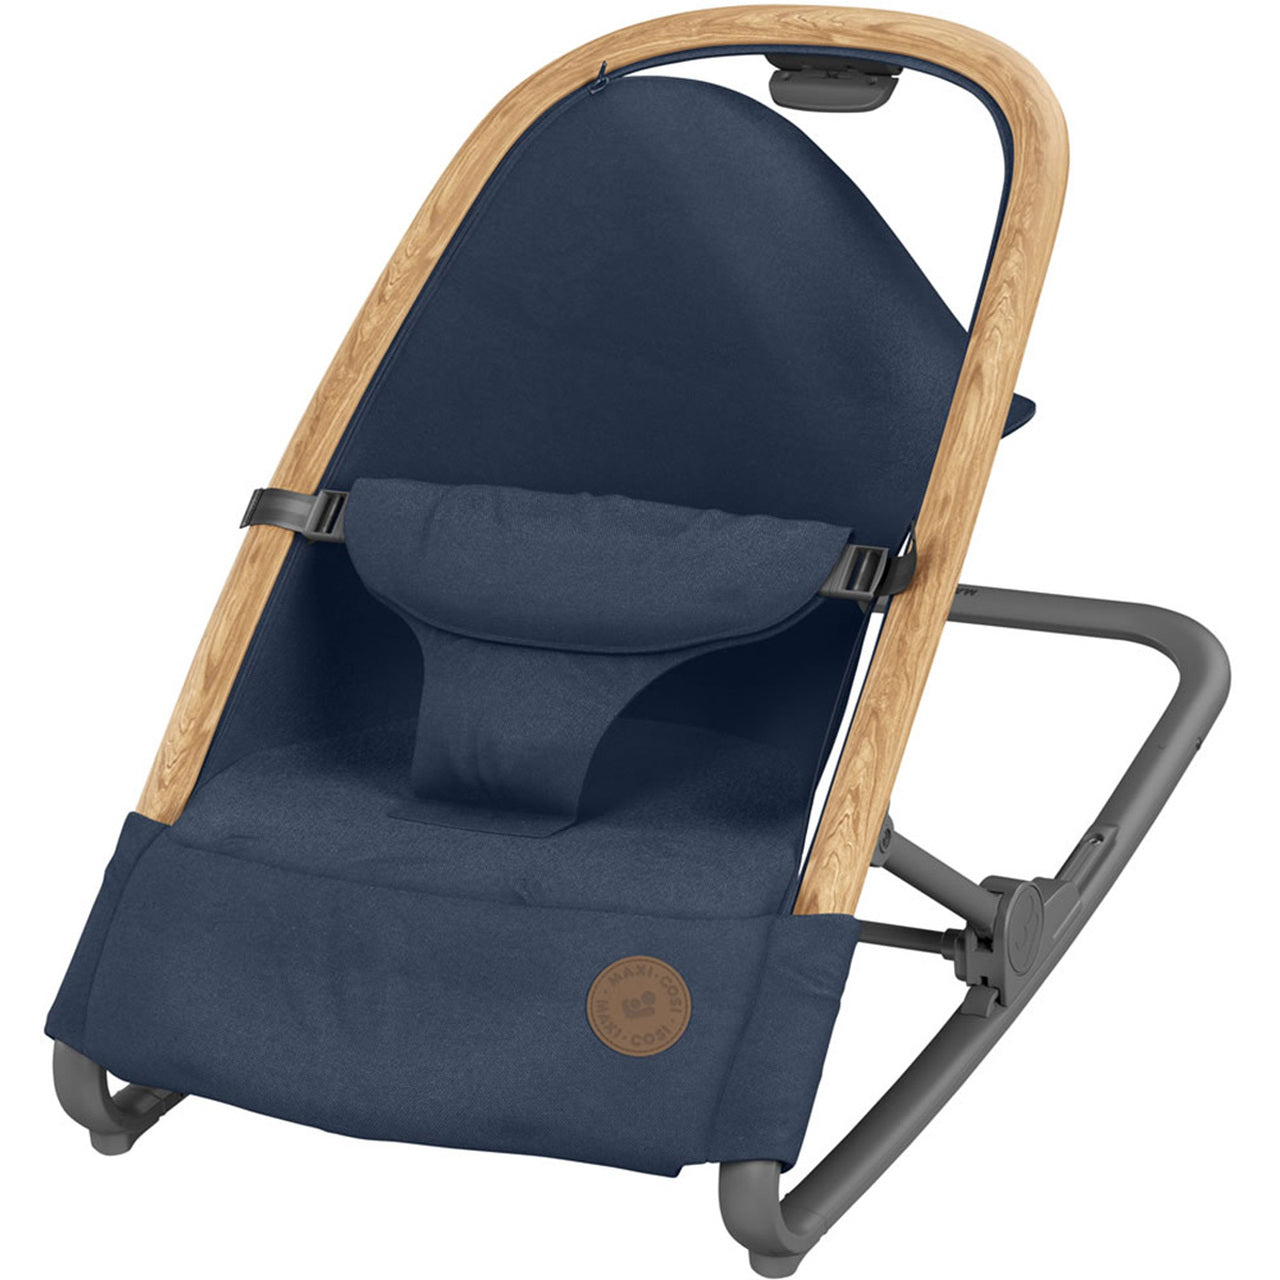 Maxi-Cosi Kori Bouncer - Happy Baby